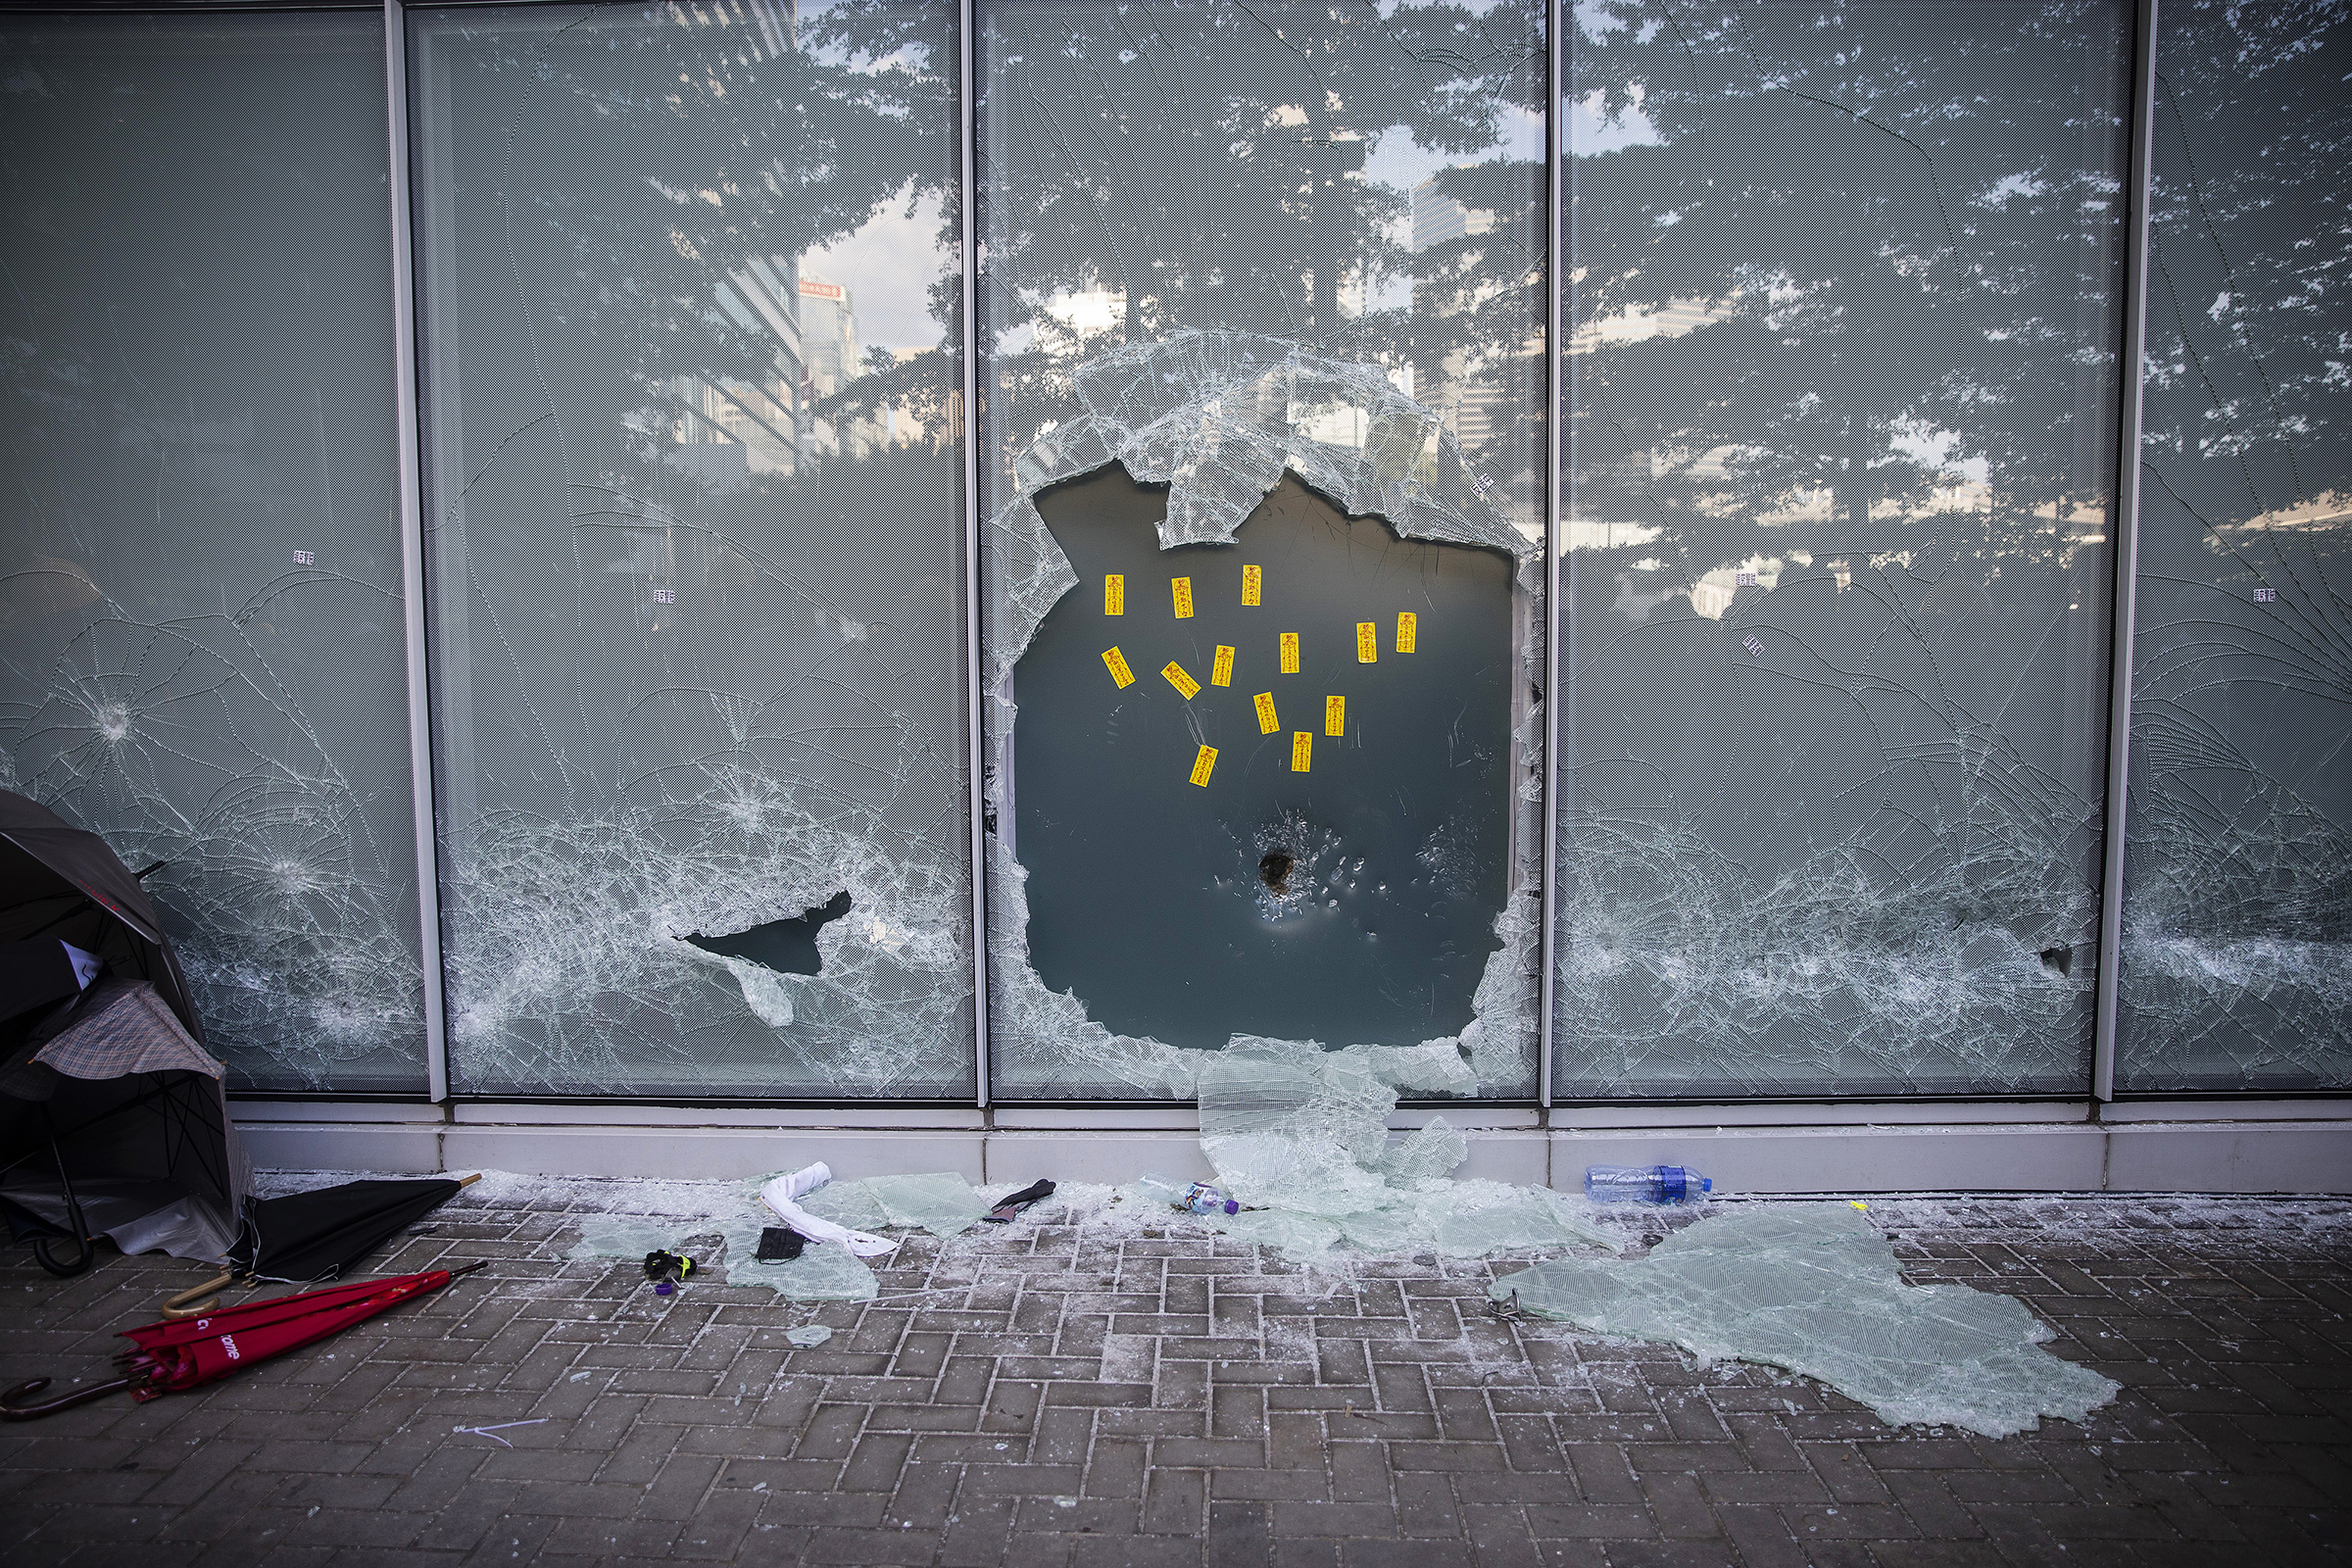 A broken window at the Legislative Council building during a protest in Hong Kong on July 1, 2019.